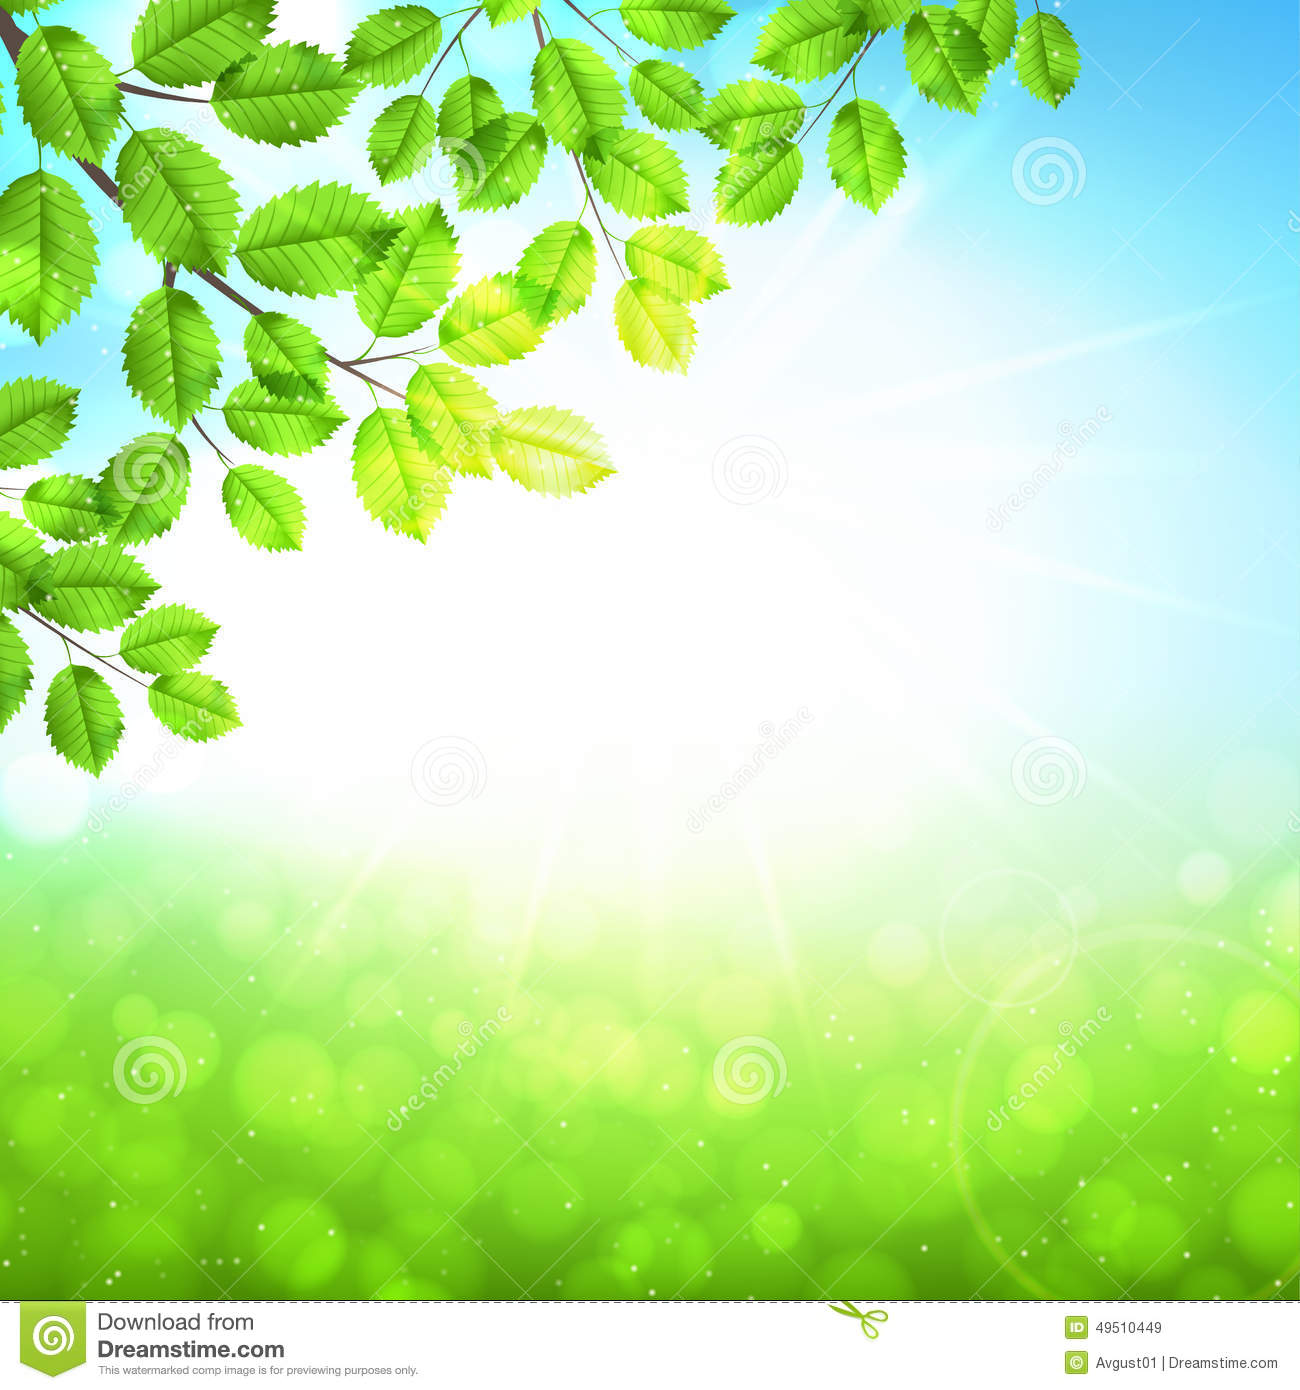 Abstract Nature Background With Leaves And Sun Stock Vector - Image ...